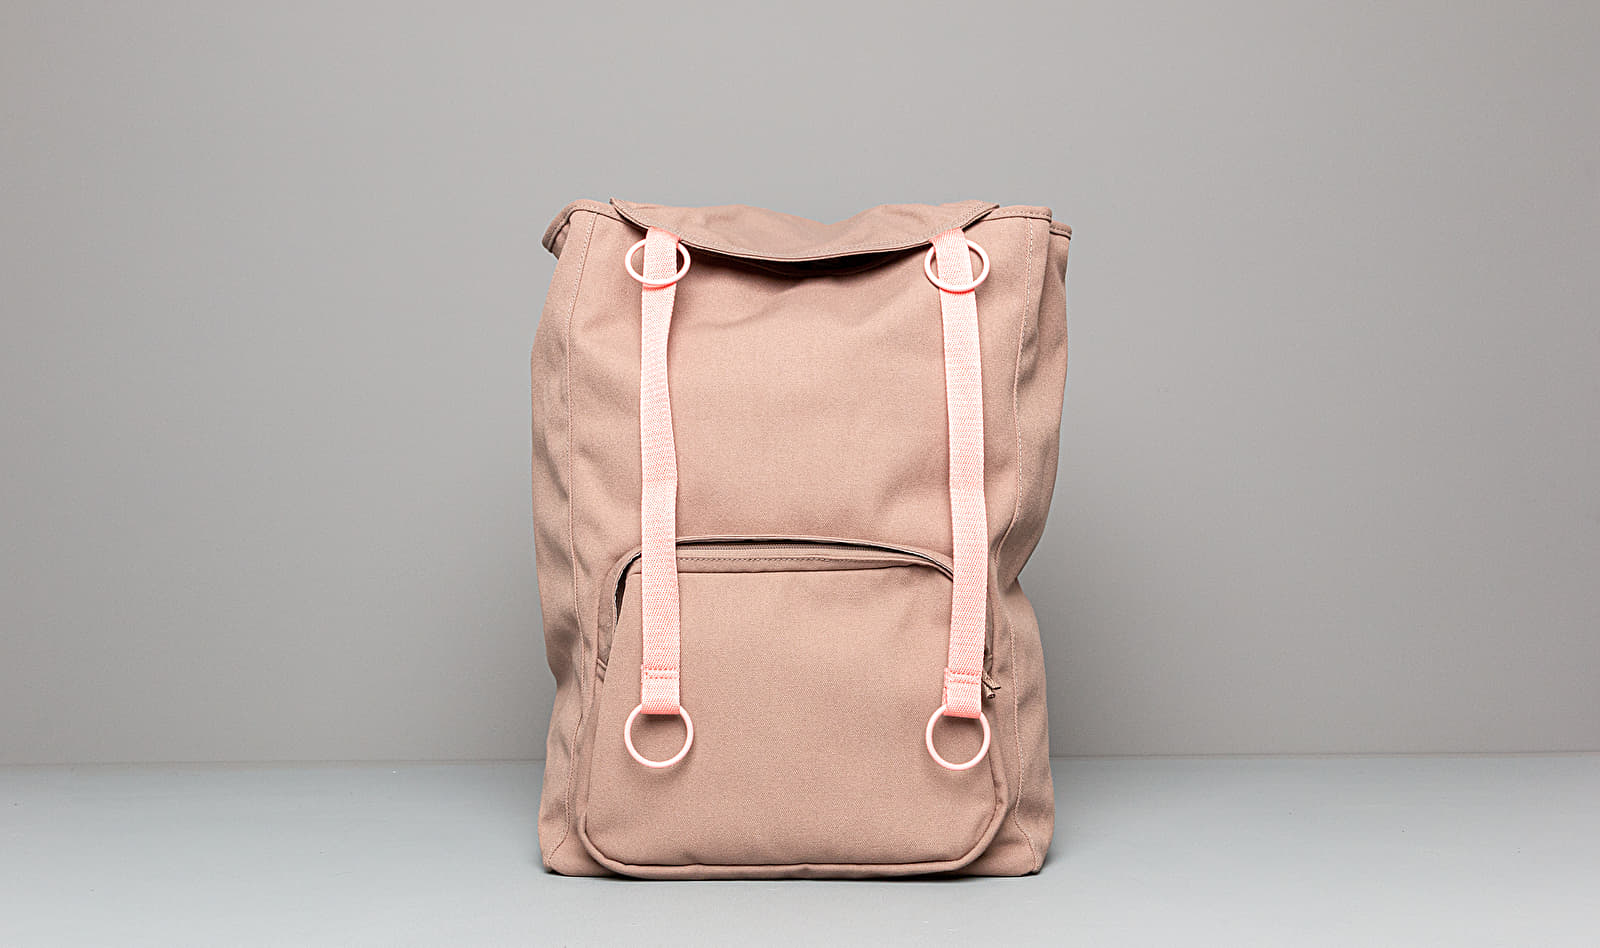 Eastpak x Raf Simons Topload Loop Backpack Grey Pink